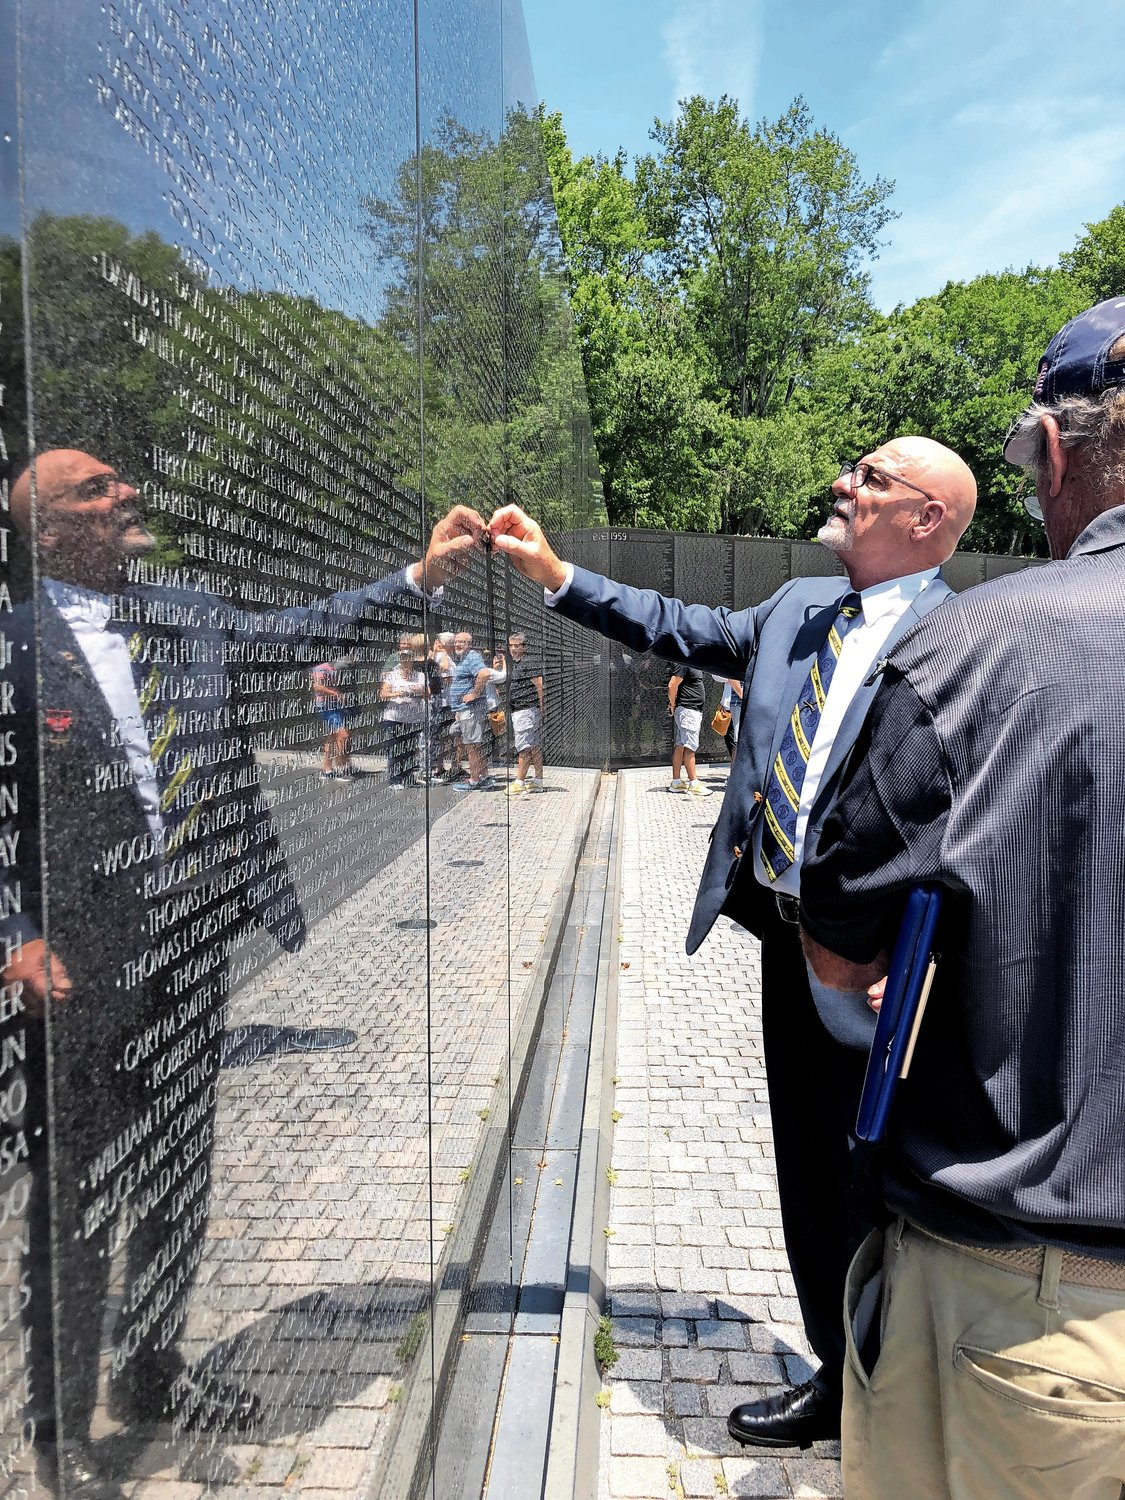 During his trip to Washington D.C., Jantz visited the Vietnam Veterans Memorial. He found the name of his comrade Lynwood Thornton, who was killed in action the night Jantz saved his platoon. Jantz was ordered to leave Thornton's body on the battlefield, but refused.